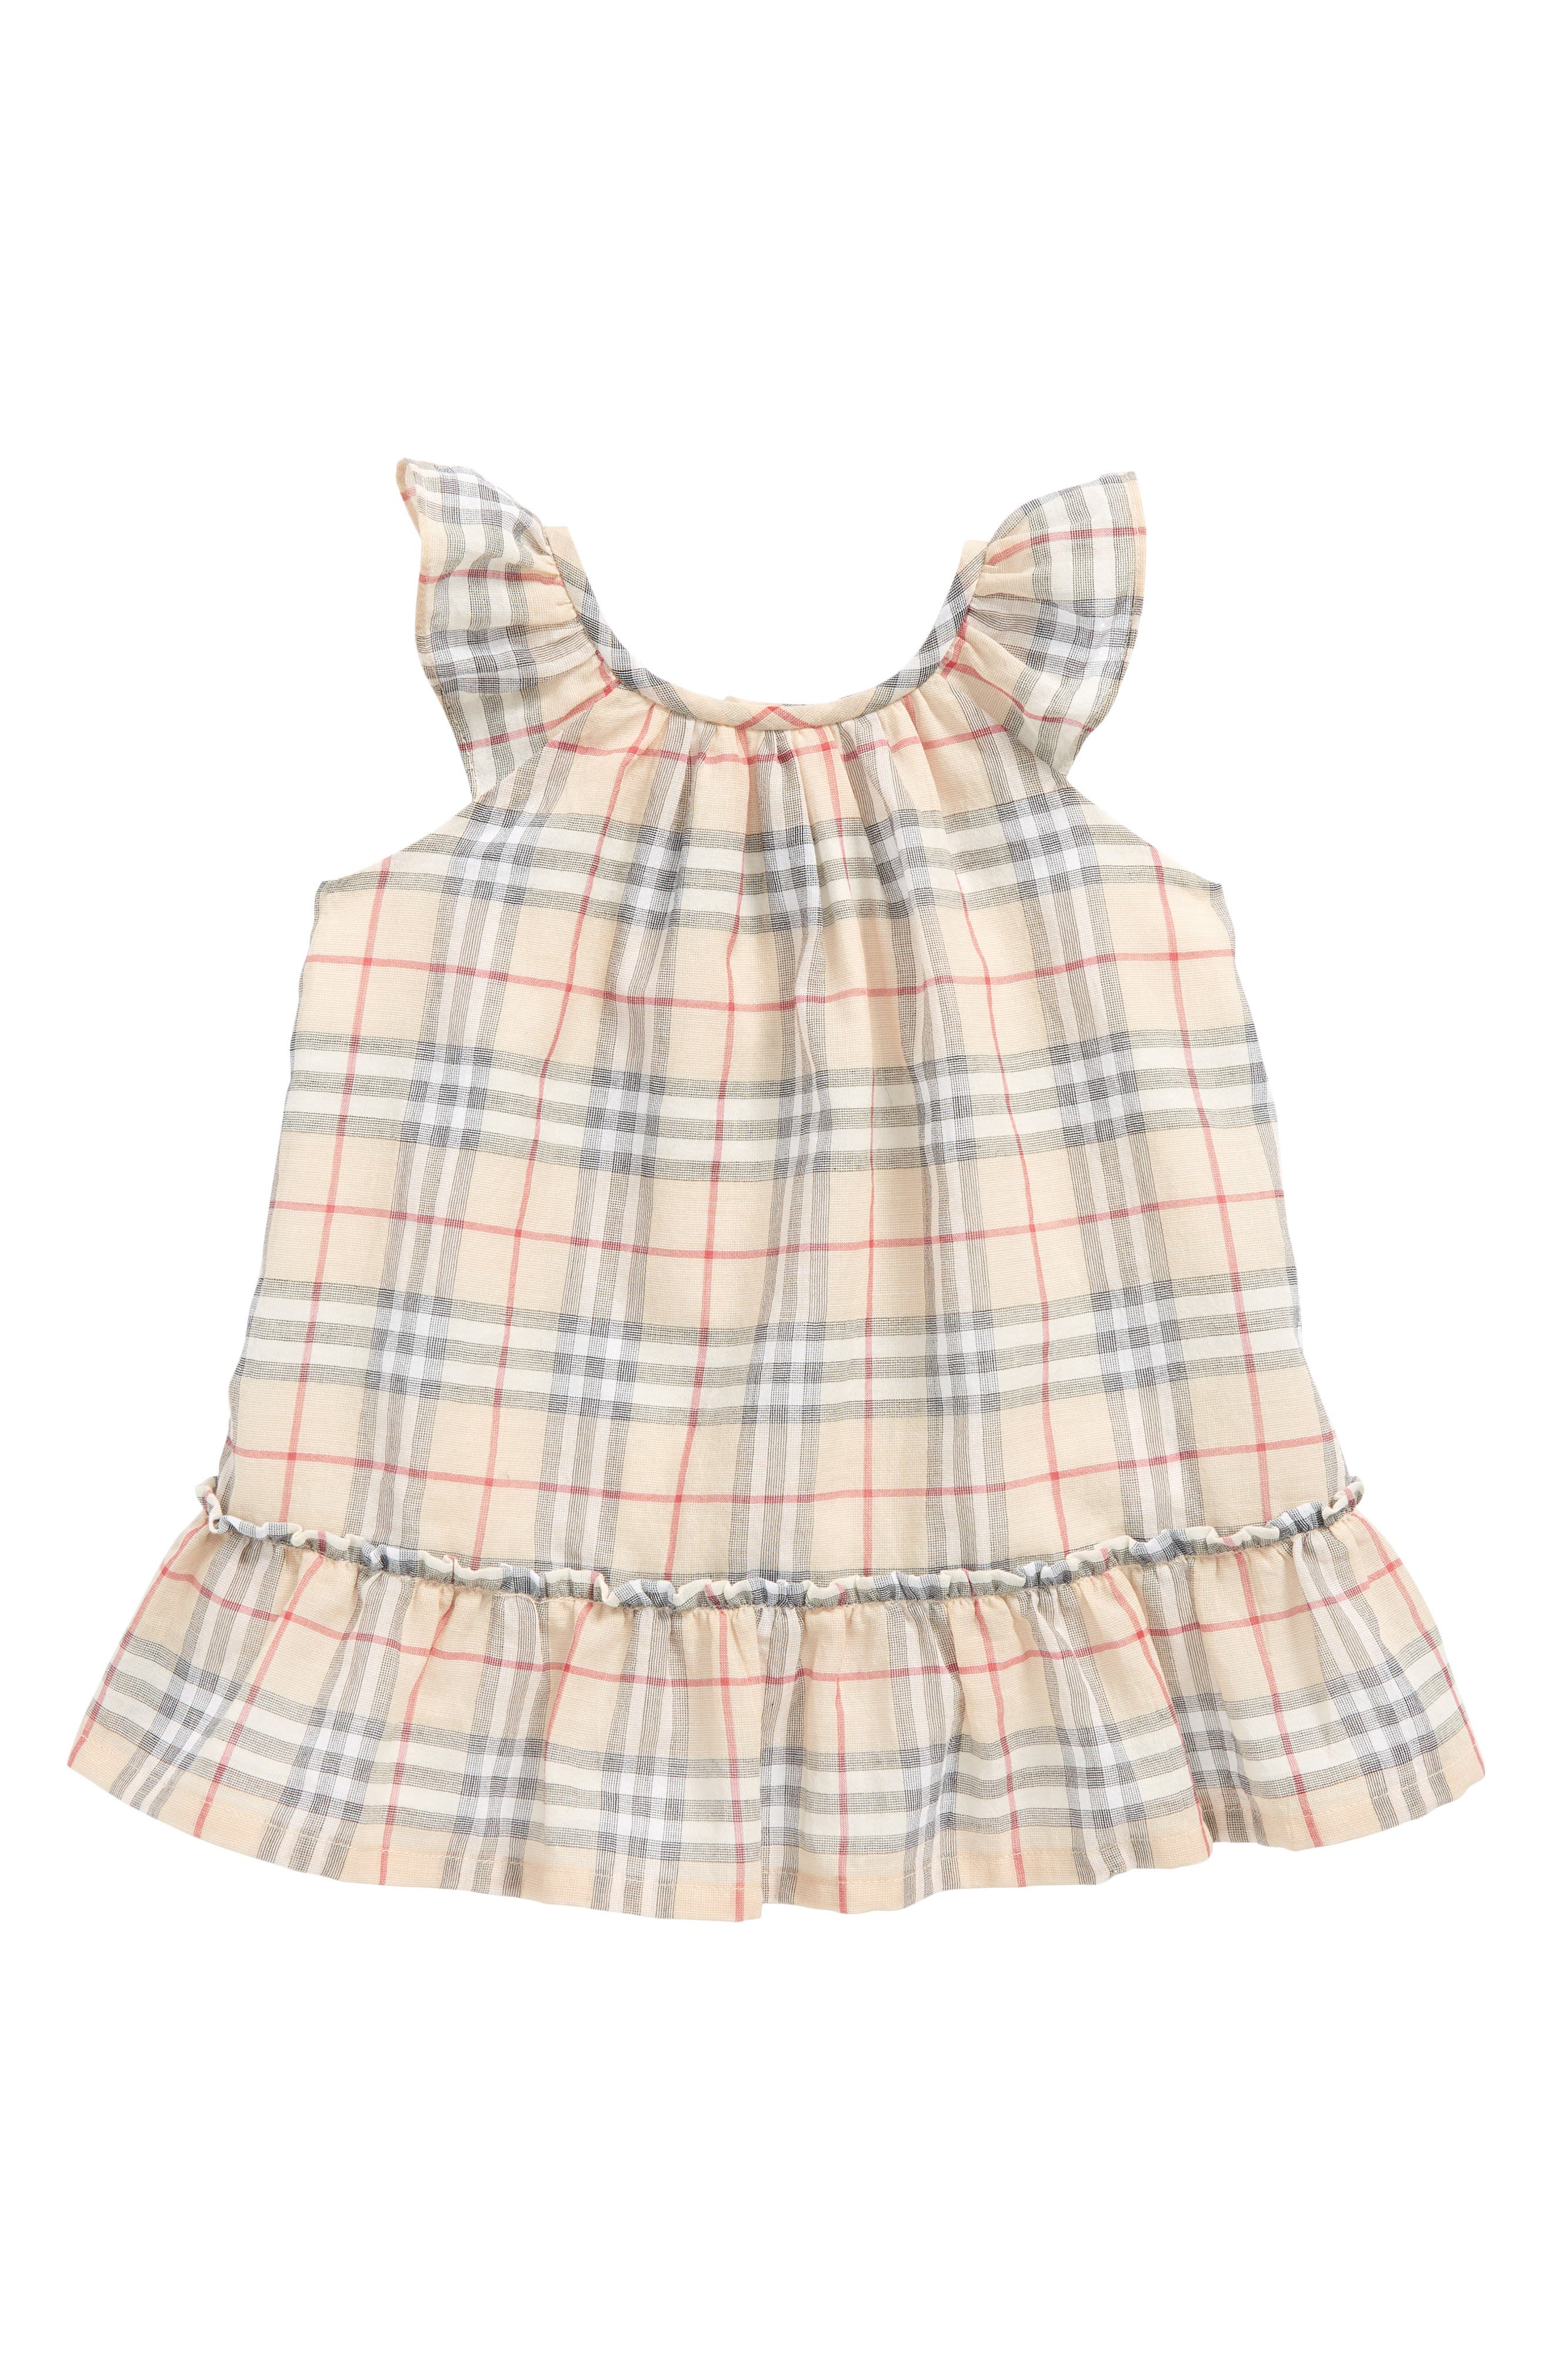 Alternate Image 1 Selected - Burberry Tania Check Dress (Baby Girls)